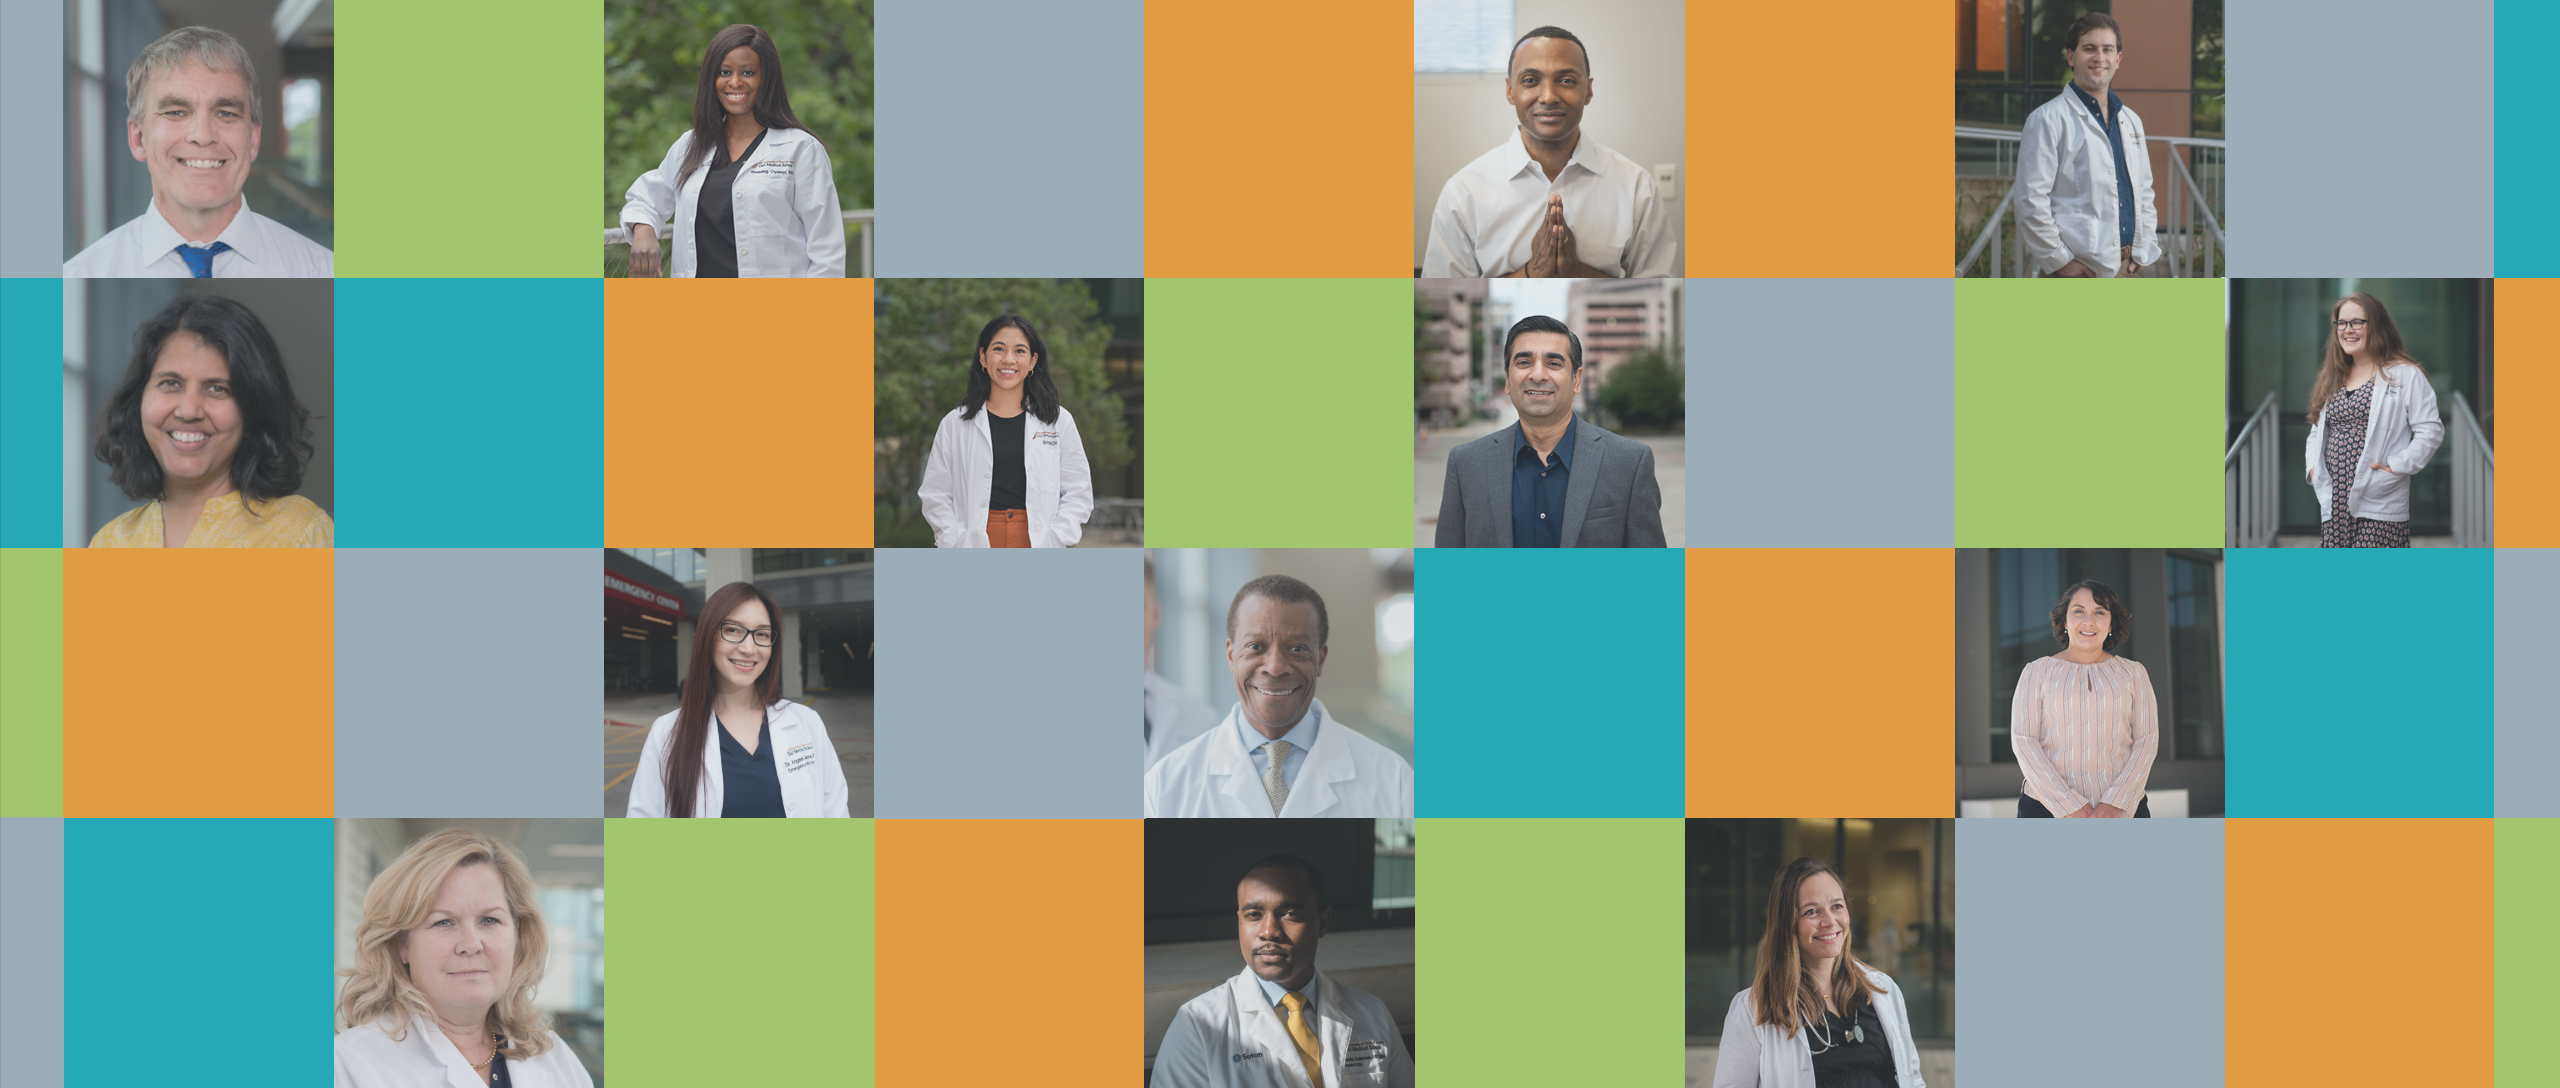 Collage of headshots of various Dell Med faculty, staff, students and residents.